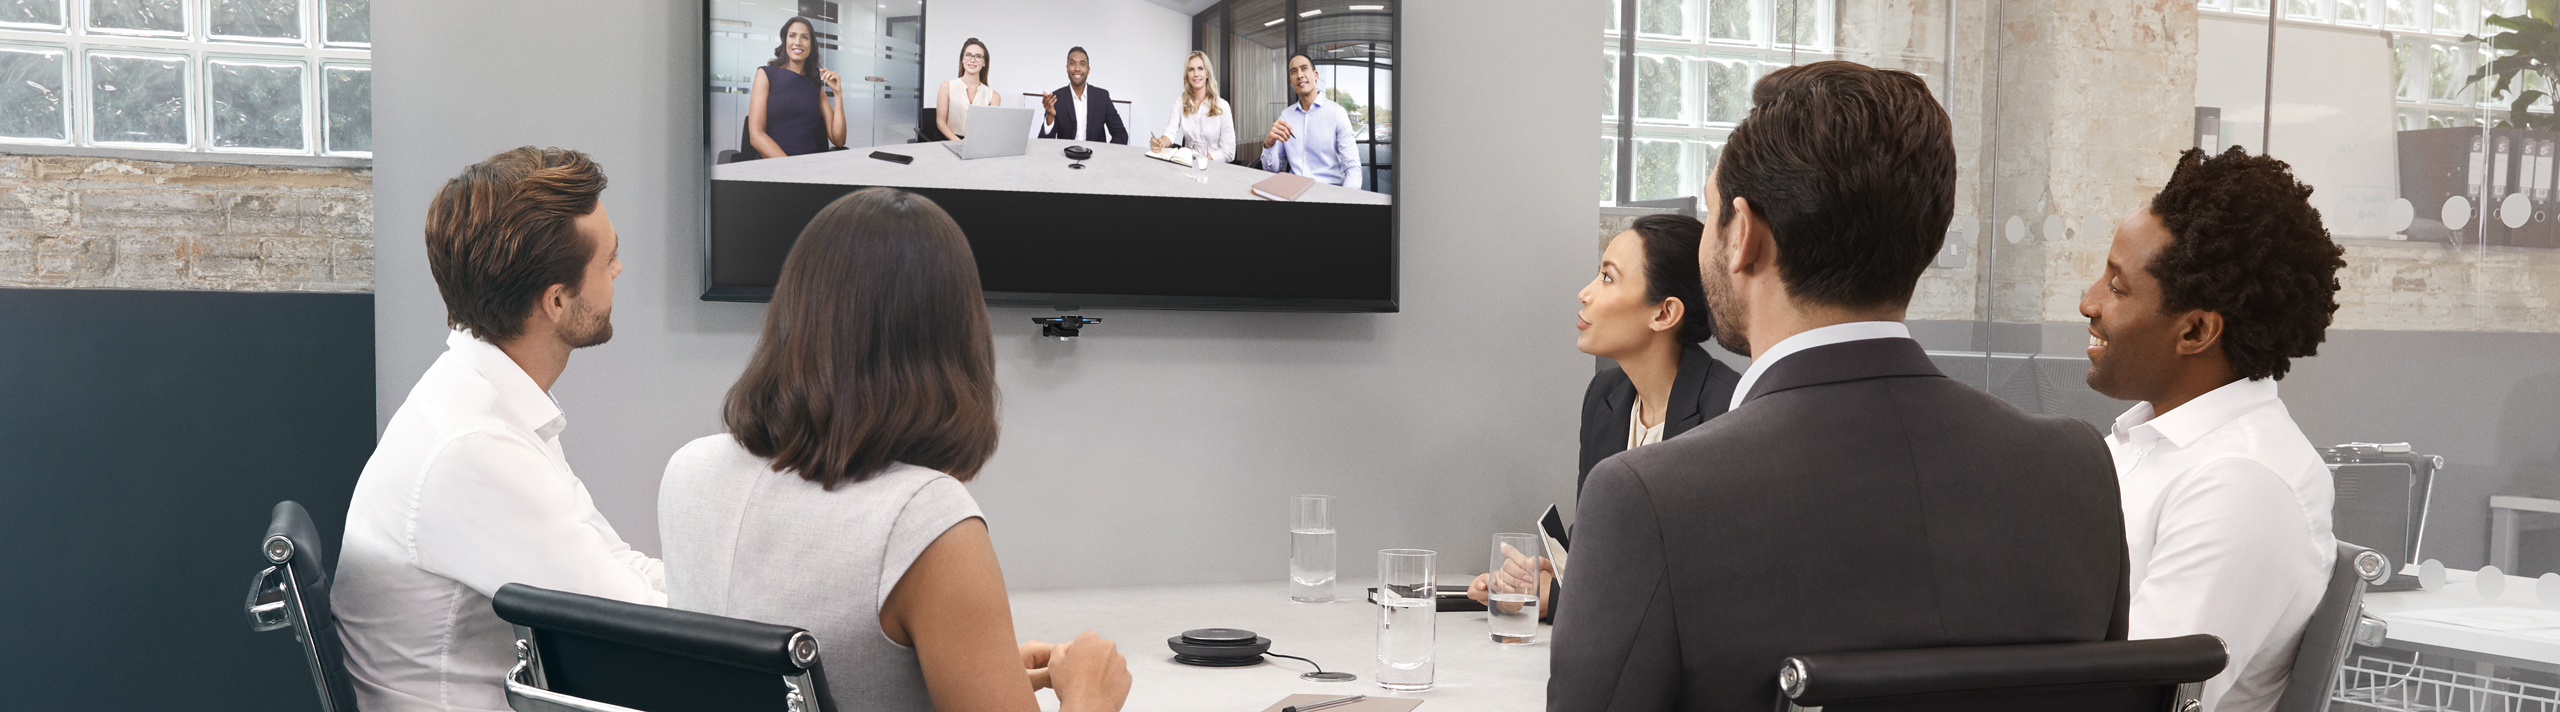 Jabra launches real-time intelligent video solution